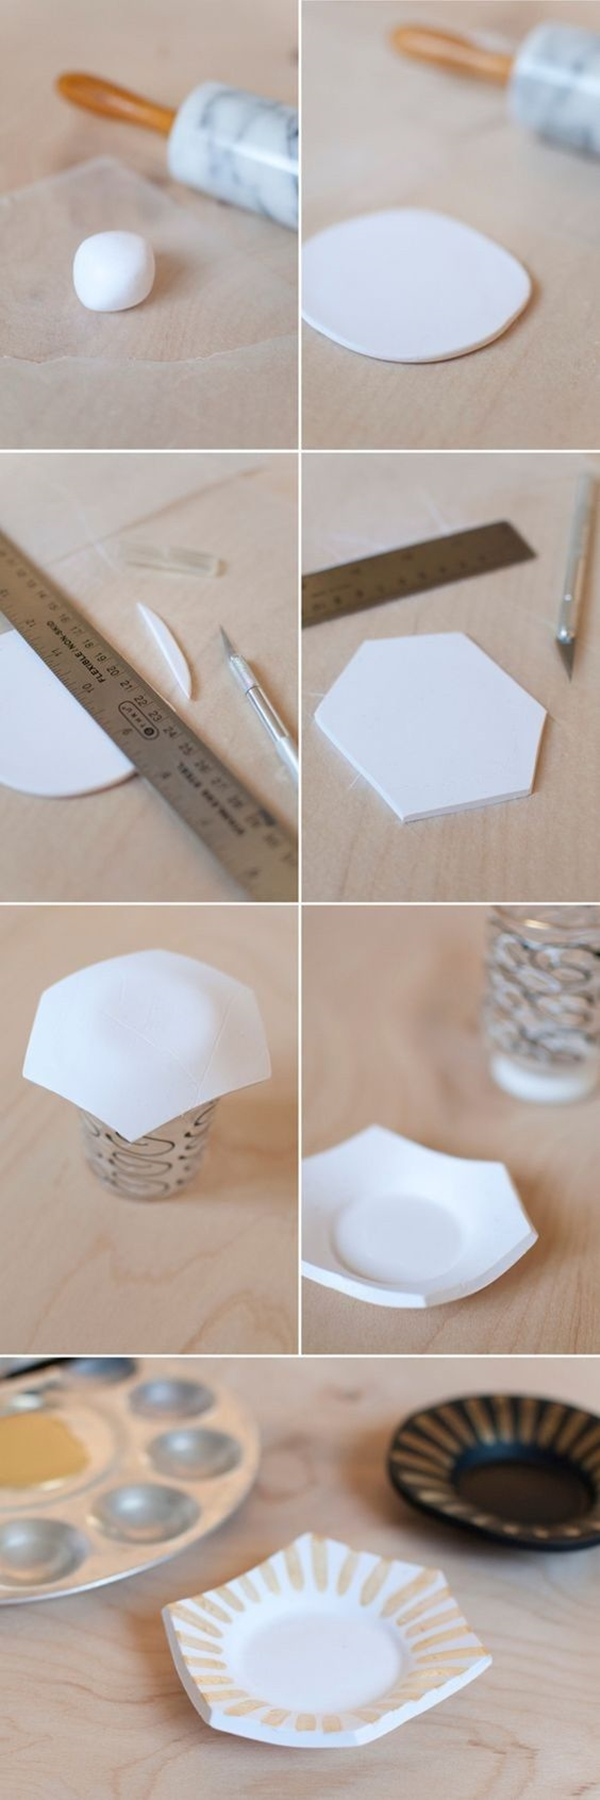 plaster-paris-craft-ideas-projects